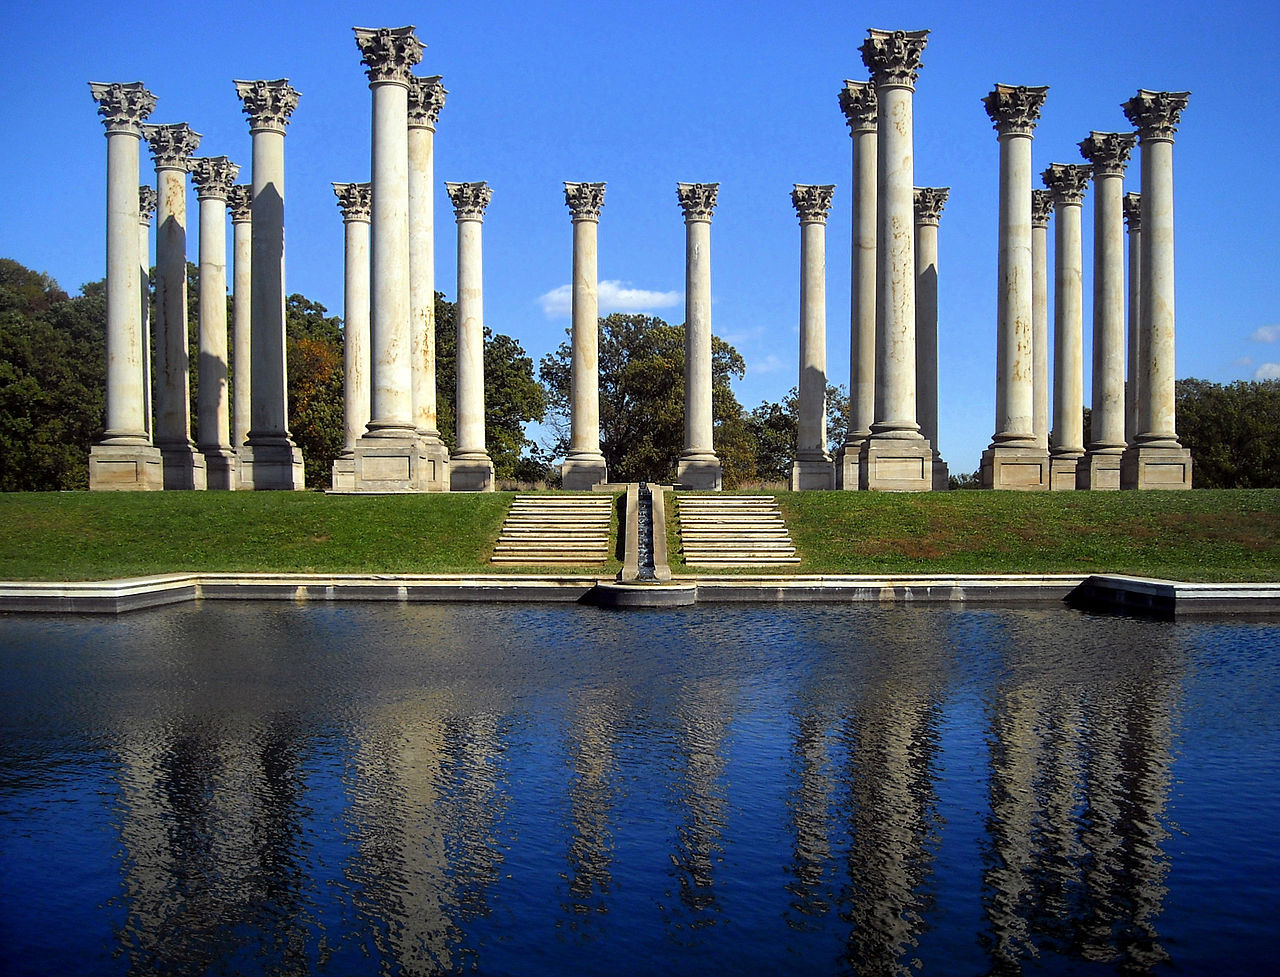 The iconic columns of the Arboretum, by AgnosticPreachersKid on Wikimedia Commons (CC BY-SA 3.0)